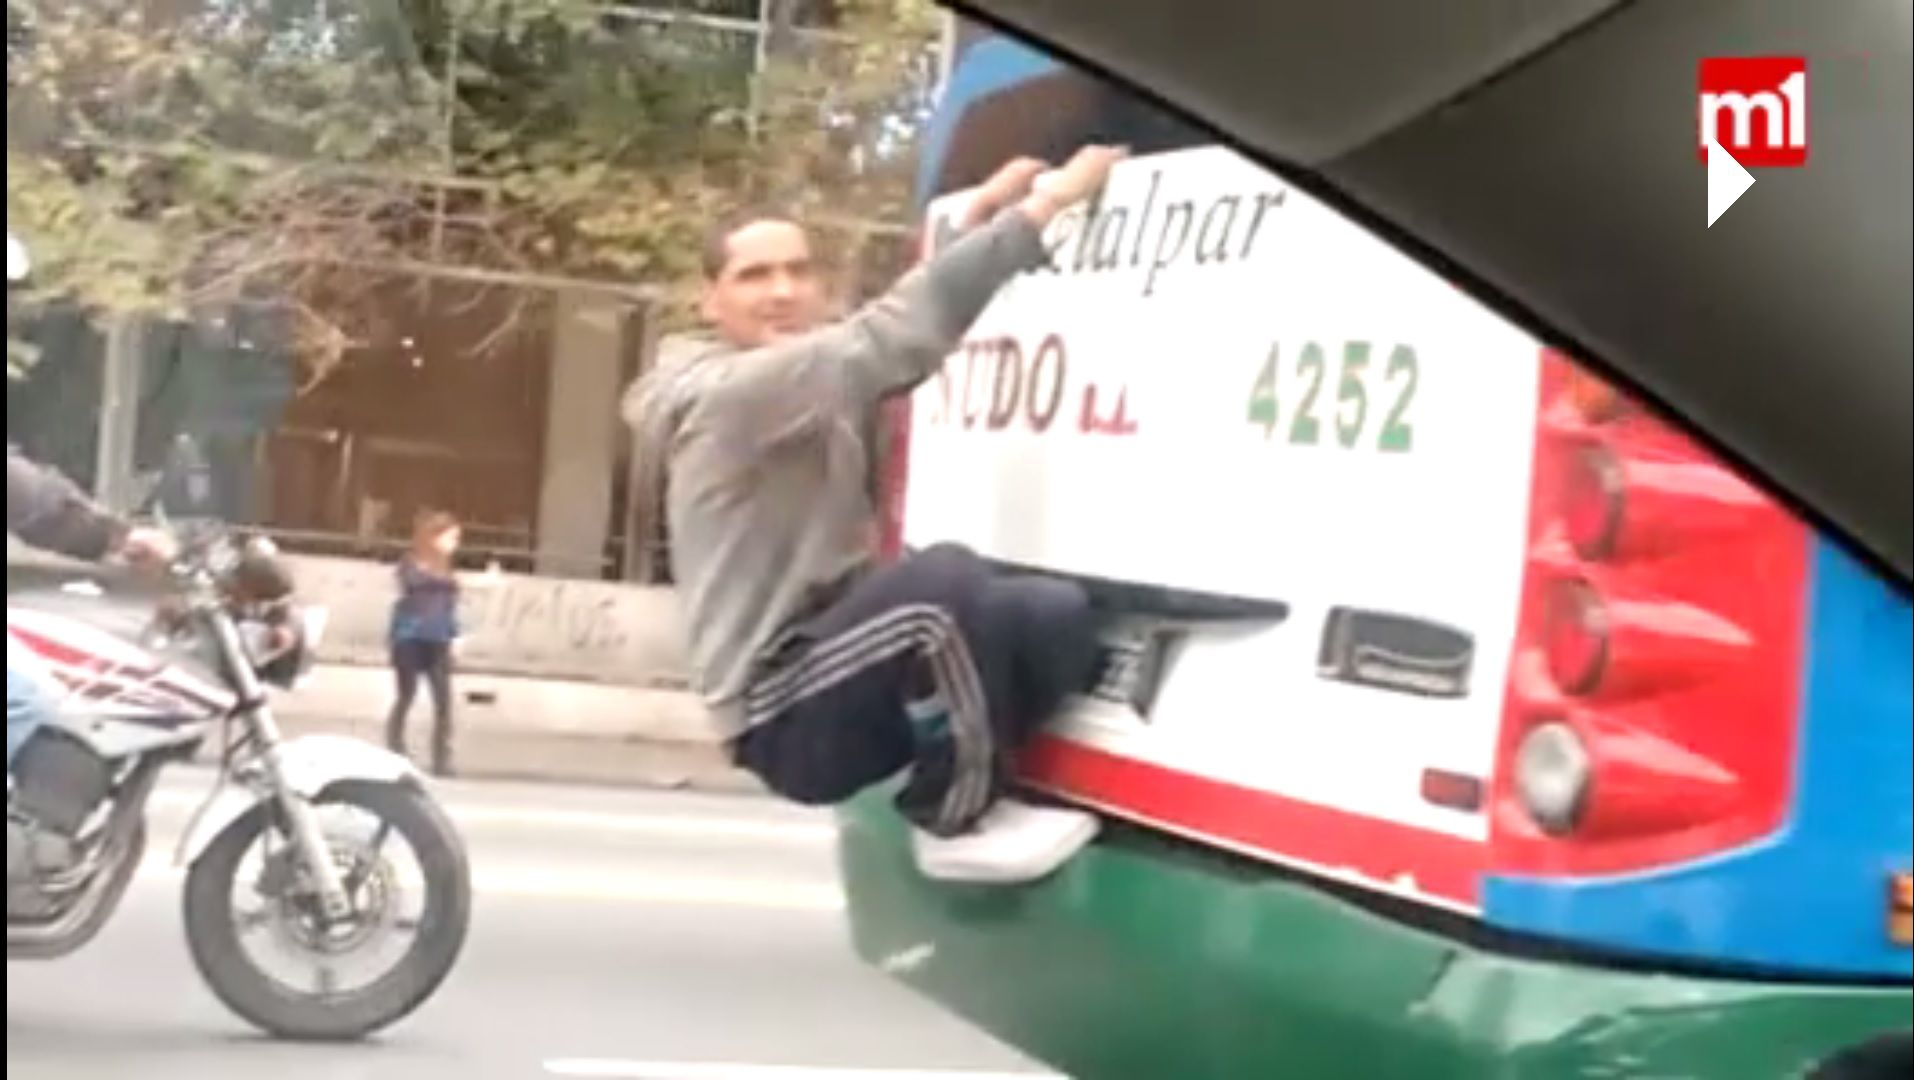 VIDEO: Viaja colgado del colectivo